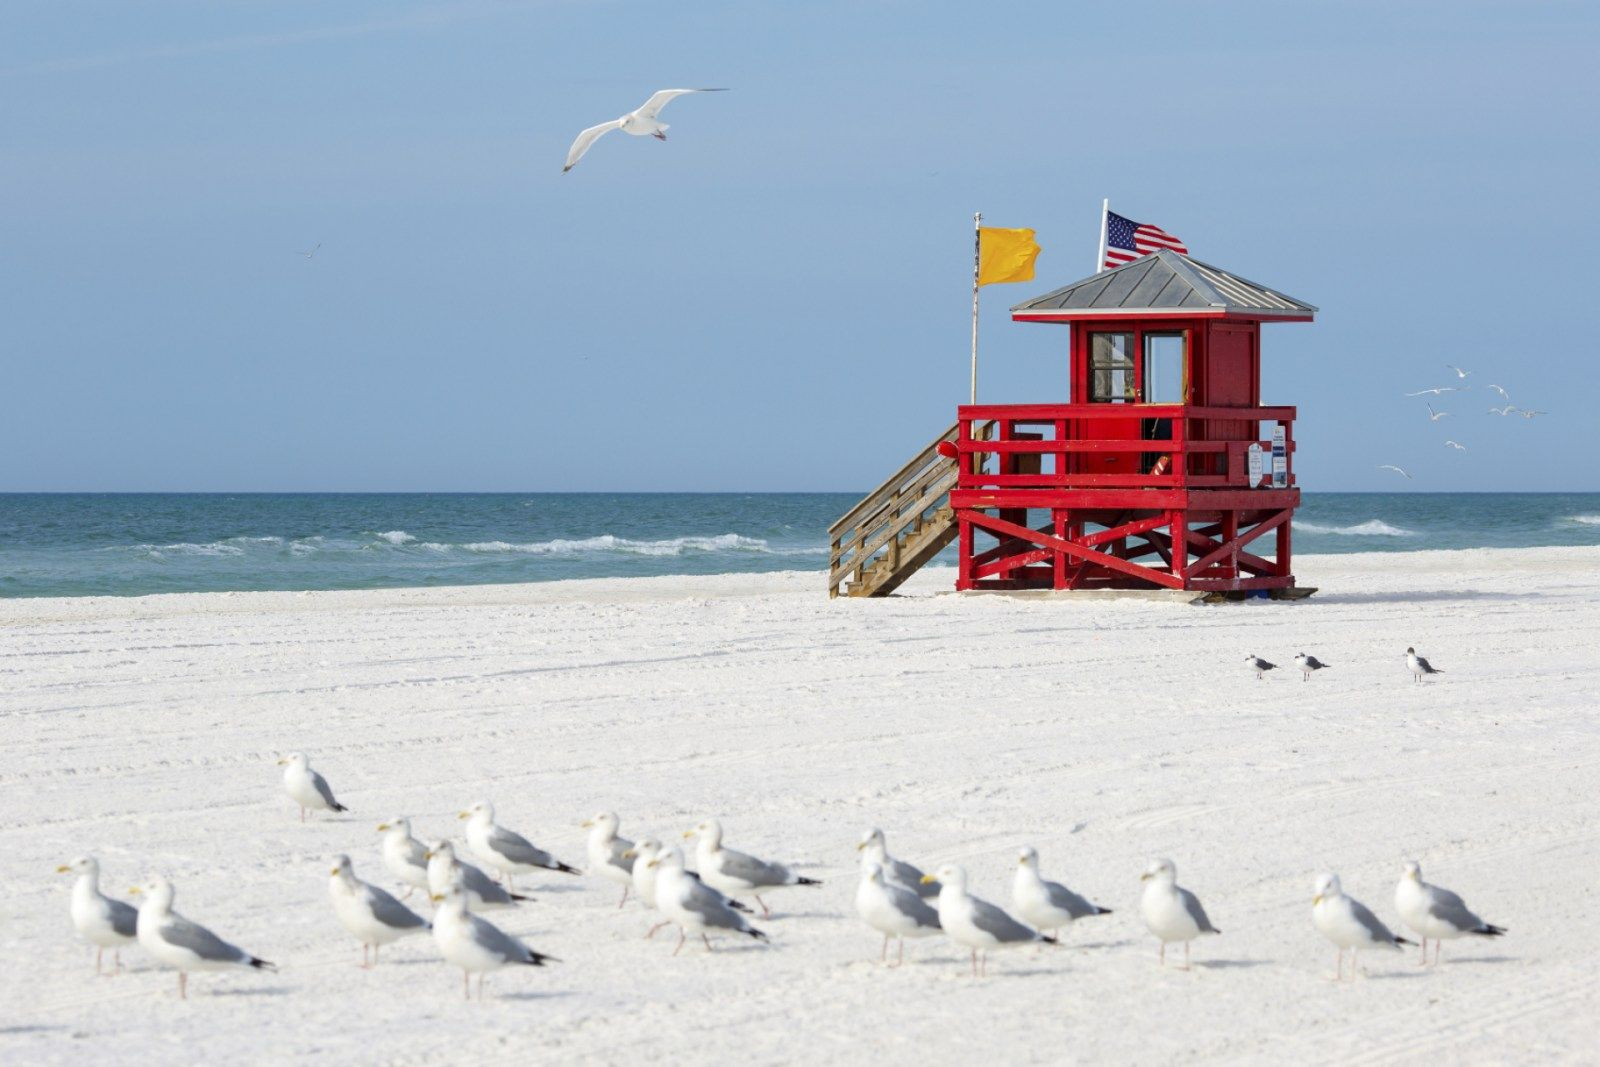 Check Out Siesta Key Vacation Rentals It S Never Been Easier To Relax And Enjoy All The Comforts Of Home We Have Sev Siesta Key Beach Siesta Beach Beach Town